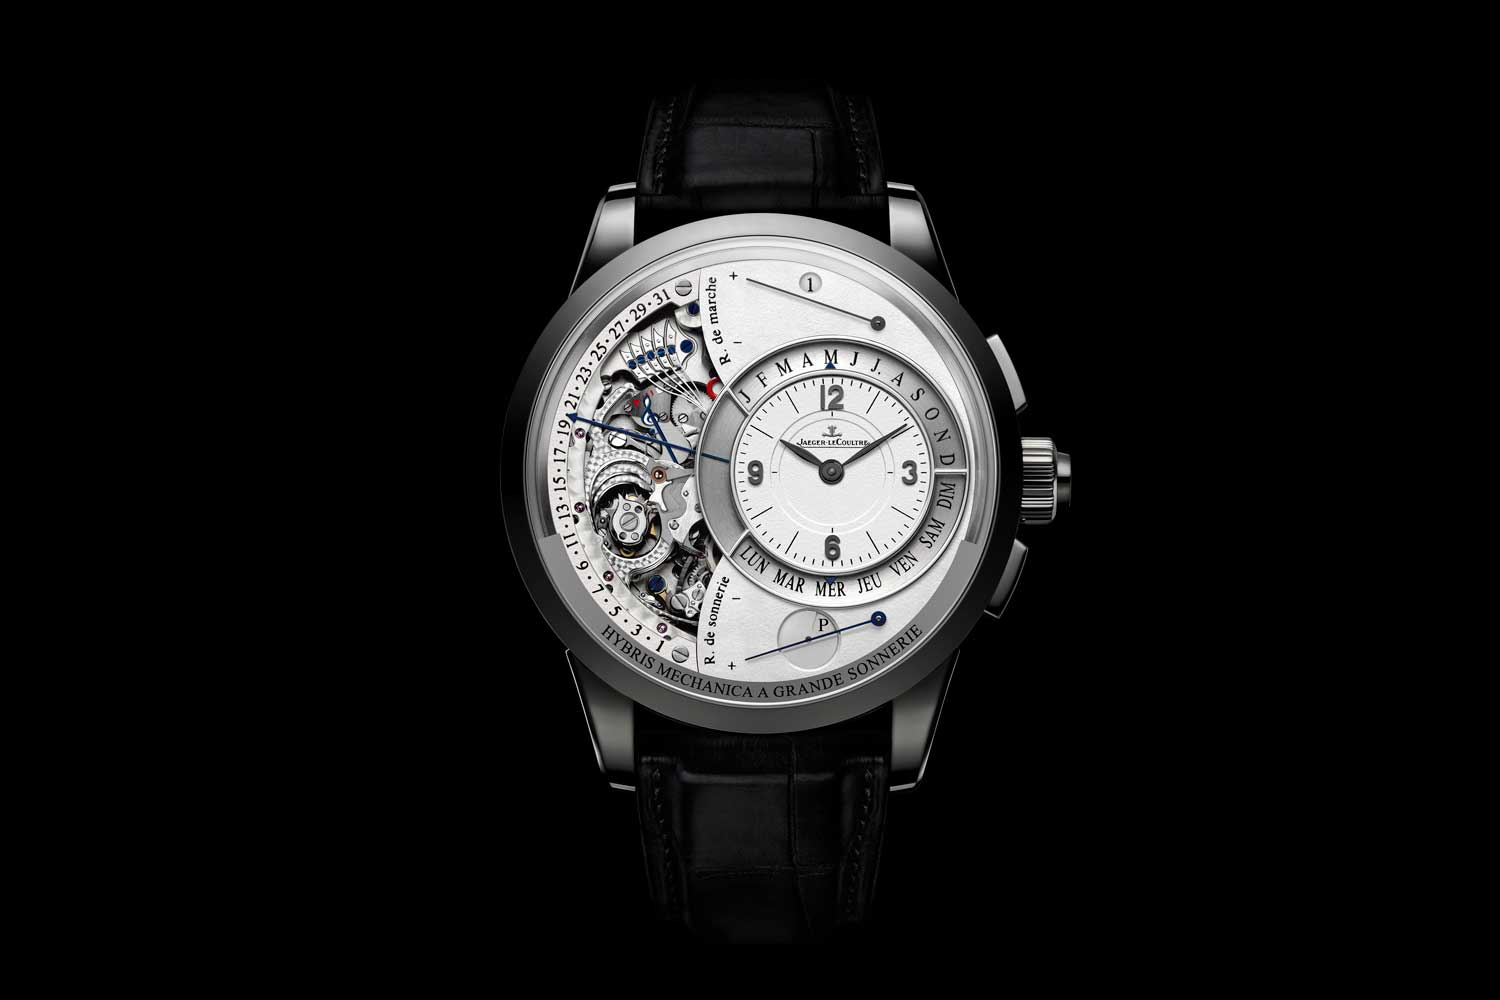 2010: The Jaeger-LeCoultre Hybris Mechanica à Grande Sonnerie features - the striking of the time just as the Tower of Big Ben in Great Britain dictates, every hour and quarter – fully automatic and miniaturized to the size of a wristwatch. Combined with this outstanding feature the watch also comprises a flying tourbillon and a perpetual calendar with retrograde hands; a jumping hour and minute mechanism rounds off the concerto of this elaborate masterpiece of 26-complications